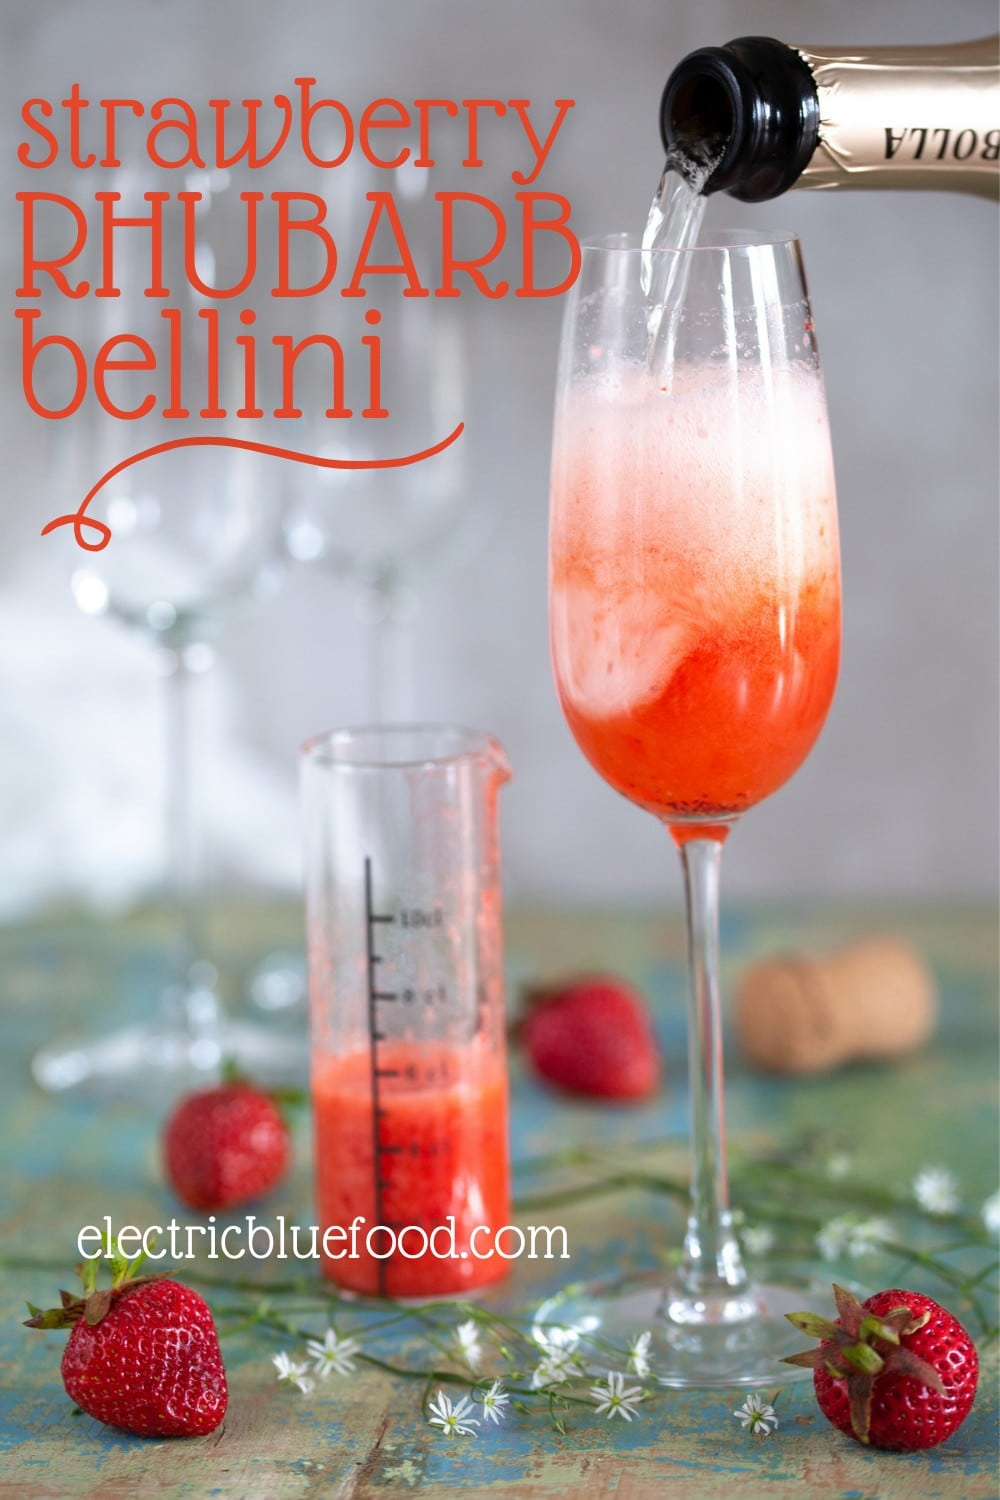 Strawberry rhubarb Bellini (rhubrb Rossini) a Prosecco cocktail with rhubarb syrup and strawberry purée.